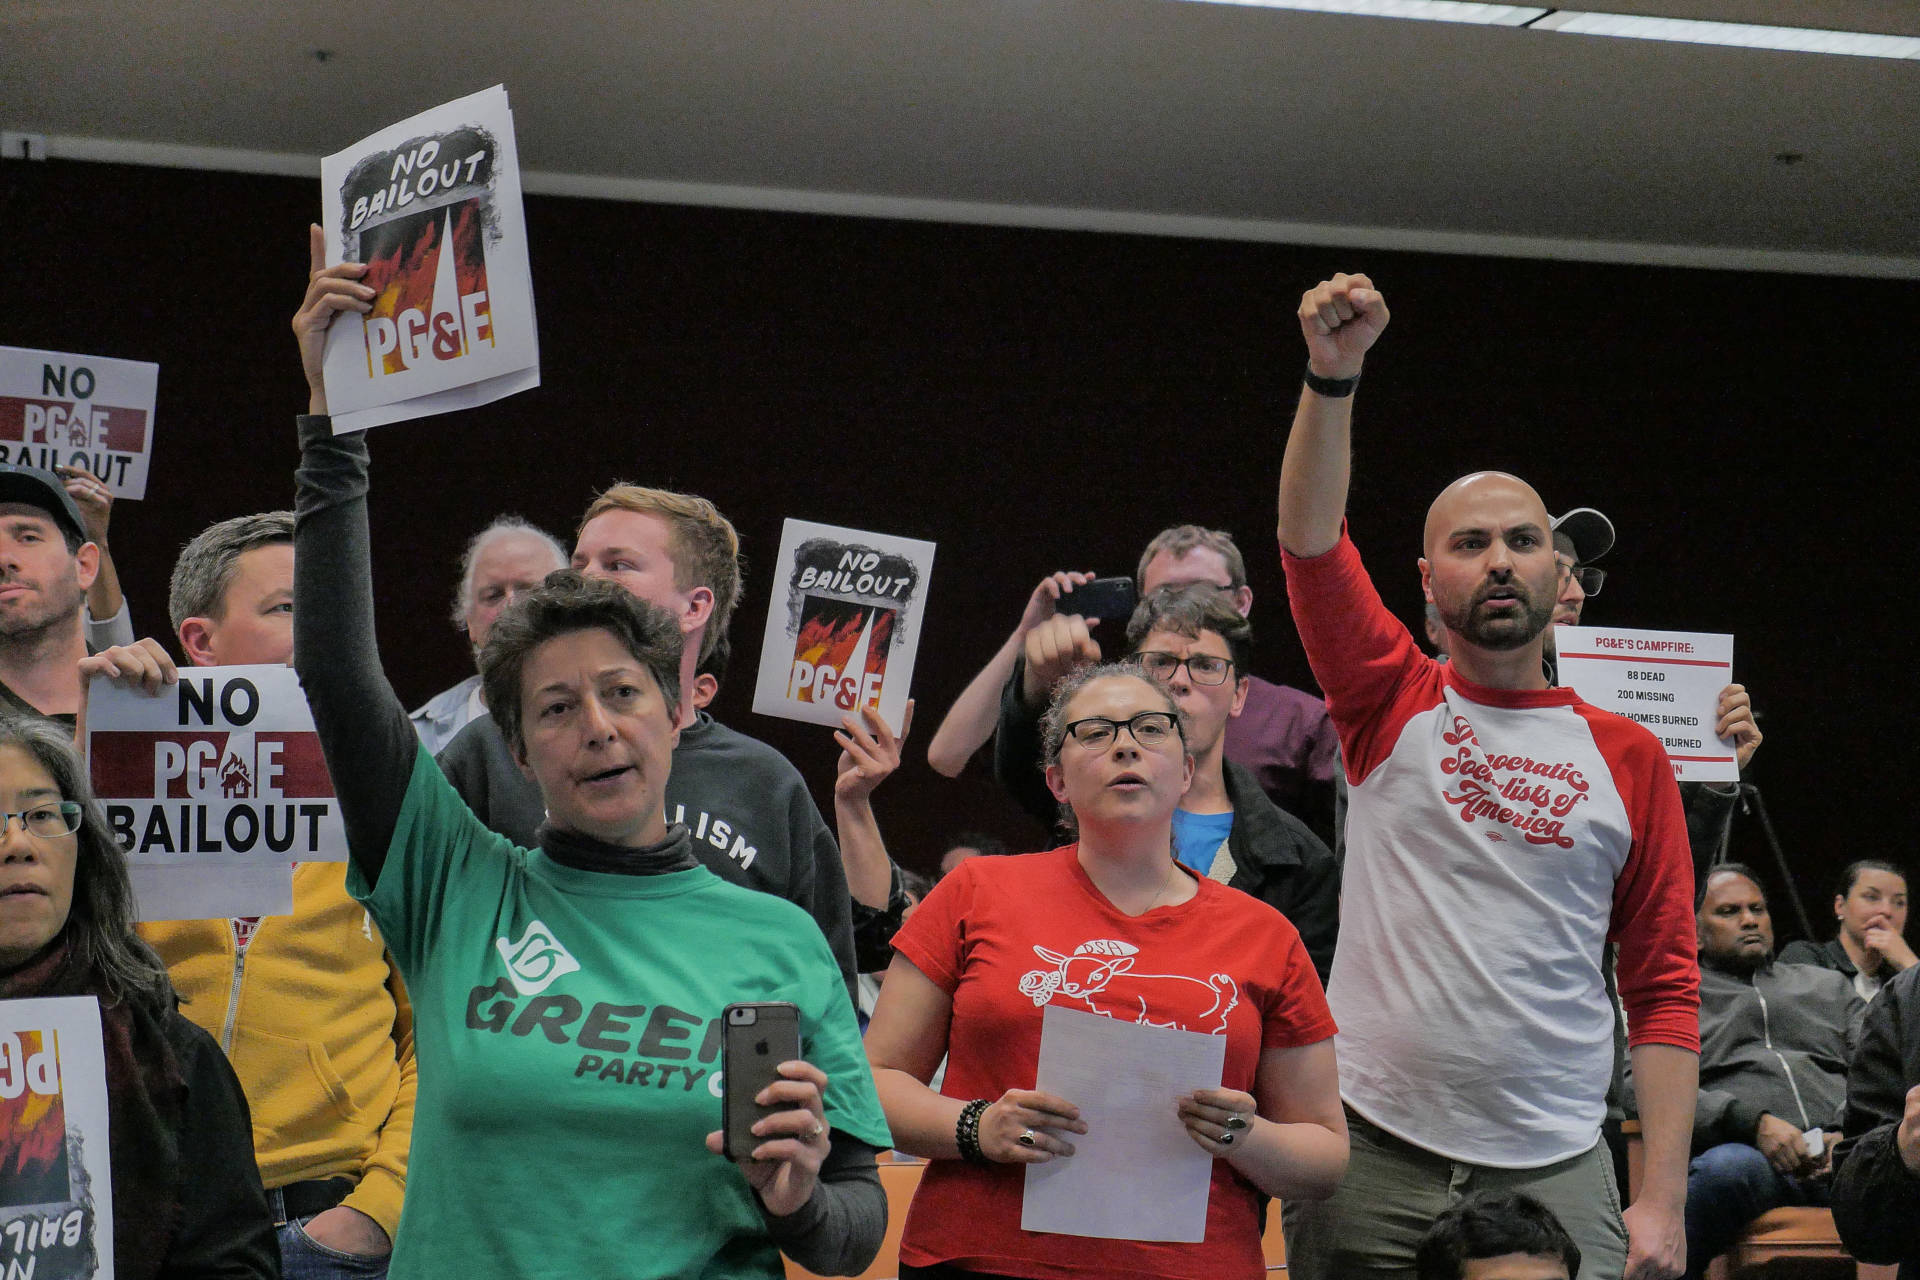 Activists from the No PG&E Bailout coalition protest at the end of an emergency CPUC meeting on Jan. 28, 2019. Sheraz Sadiq/KQED